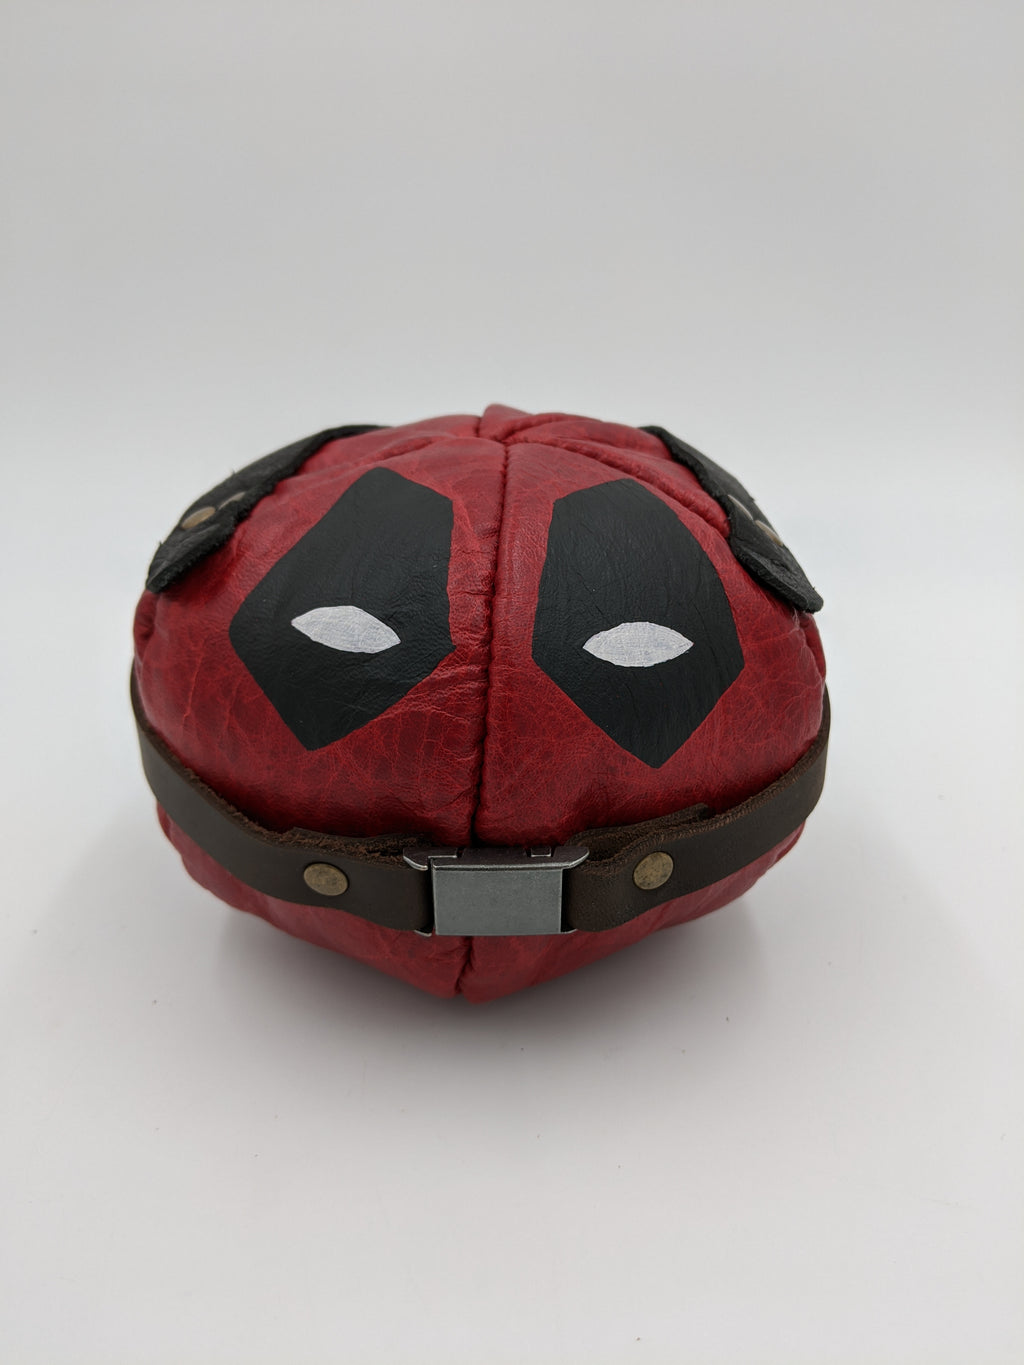 Leather office accessory, desk accessory, paper weight, stress relief, Deadpool